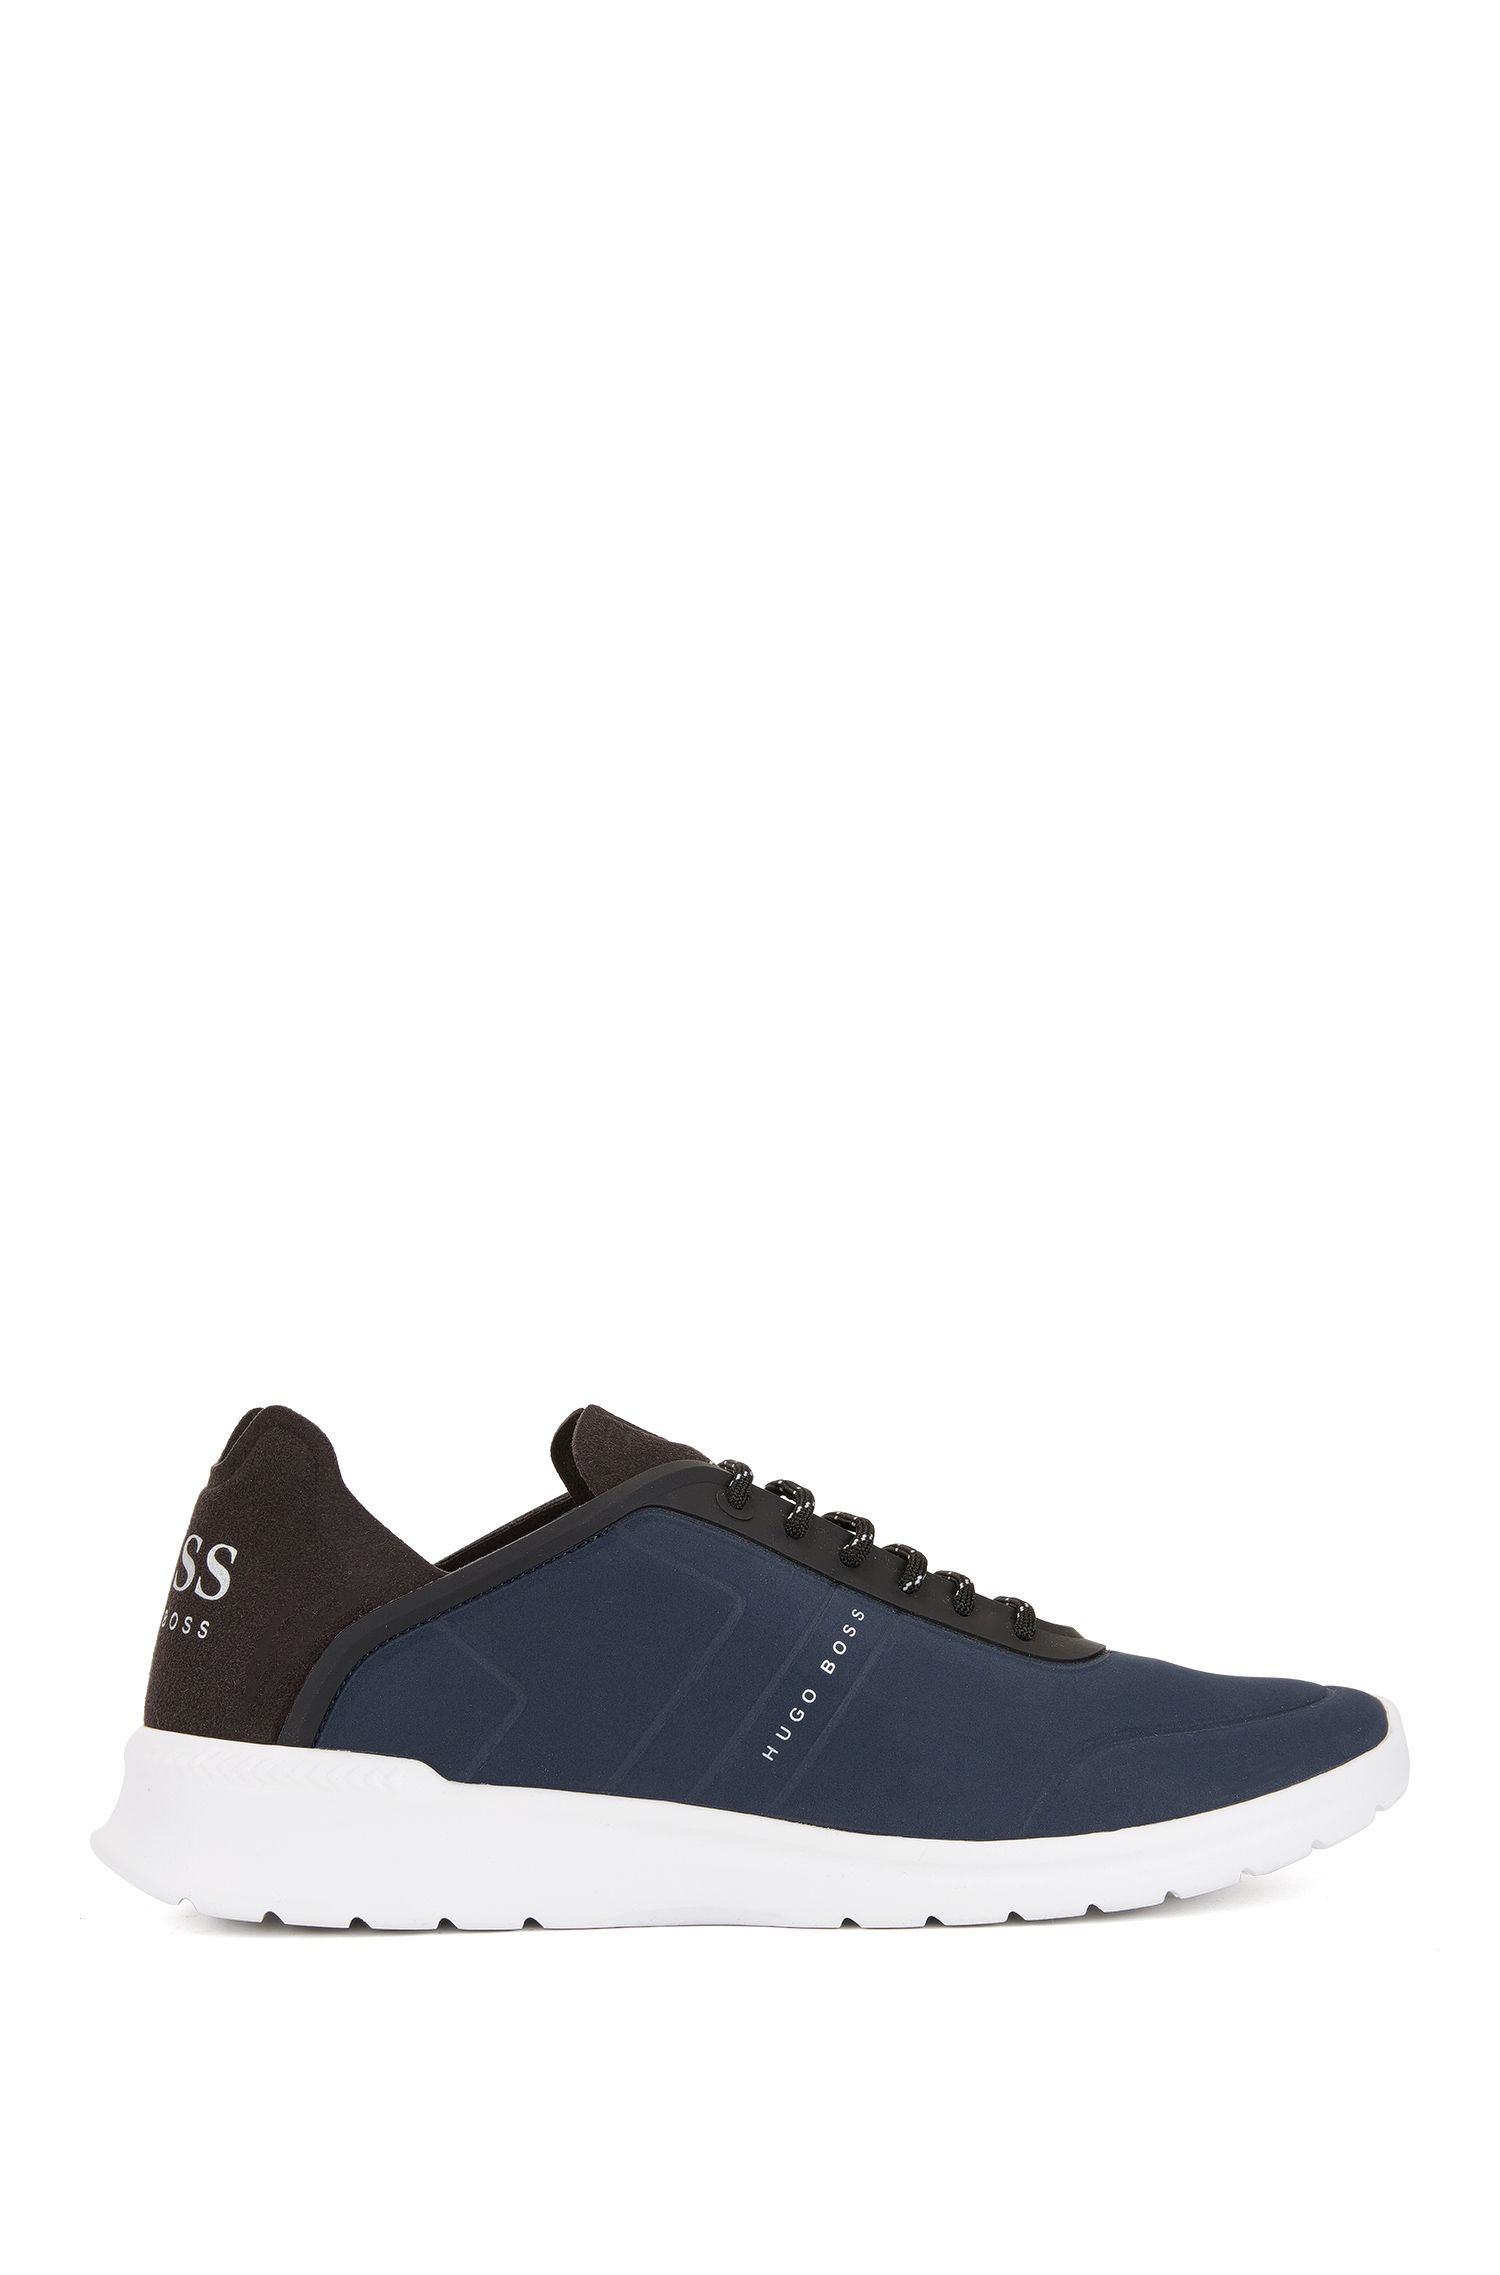 Sneakers low-top stringate con tomaia goffrata effetto nabuk